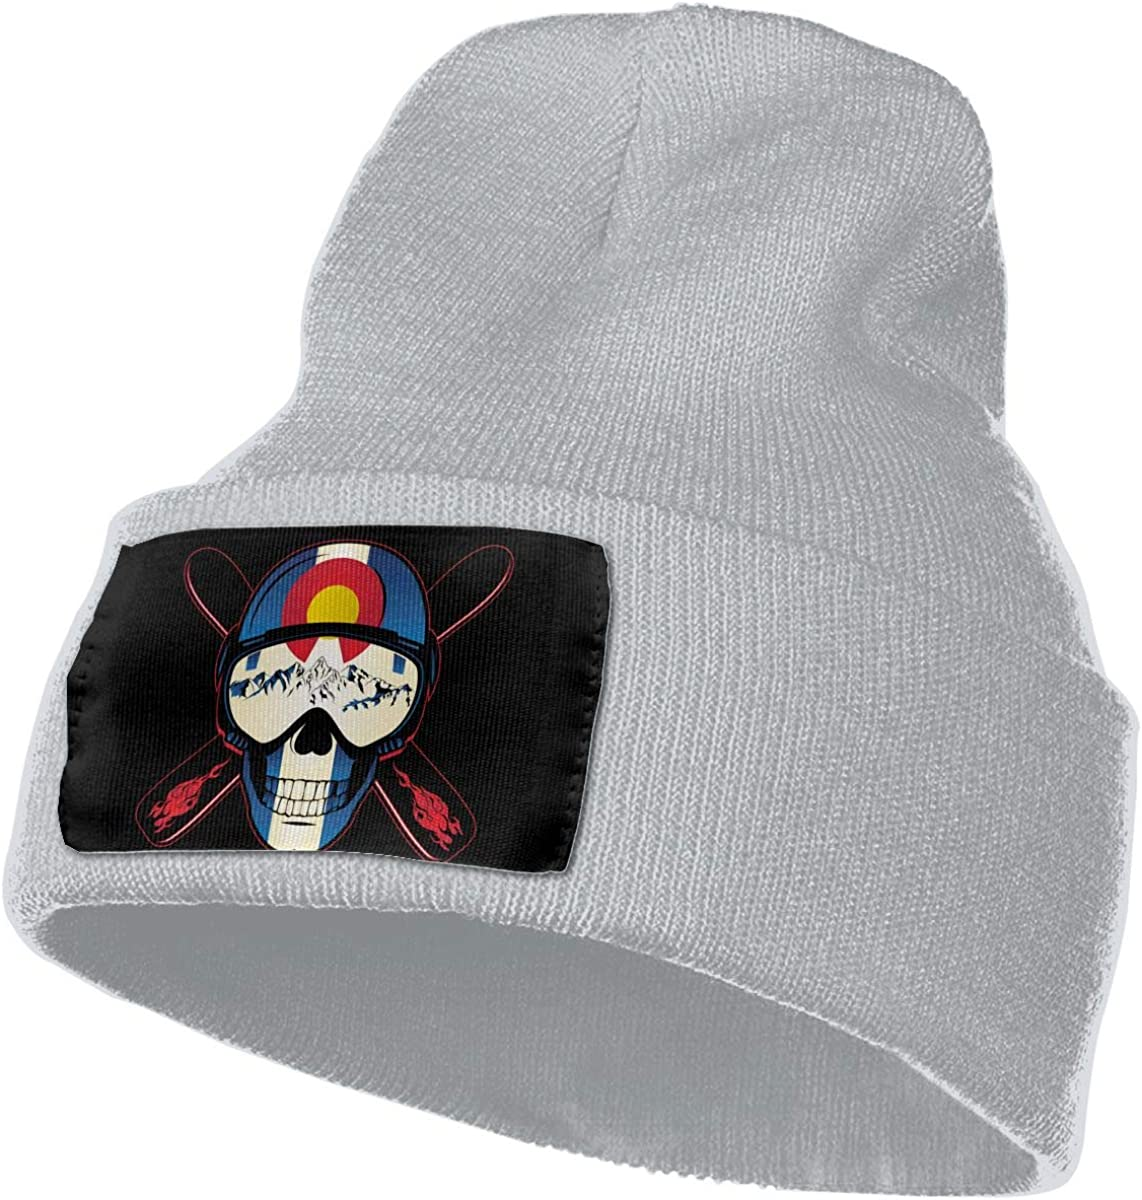 Colorado Skull Men/&Women Warm Winter Knit Plain Beanie Hat Skull Cap Acrylic Knit Cuff Hat